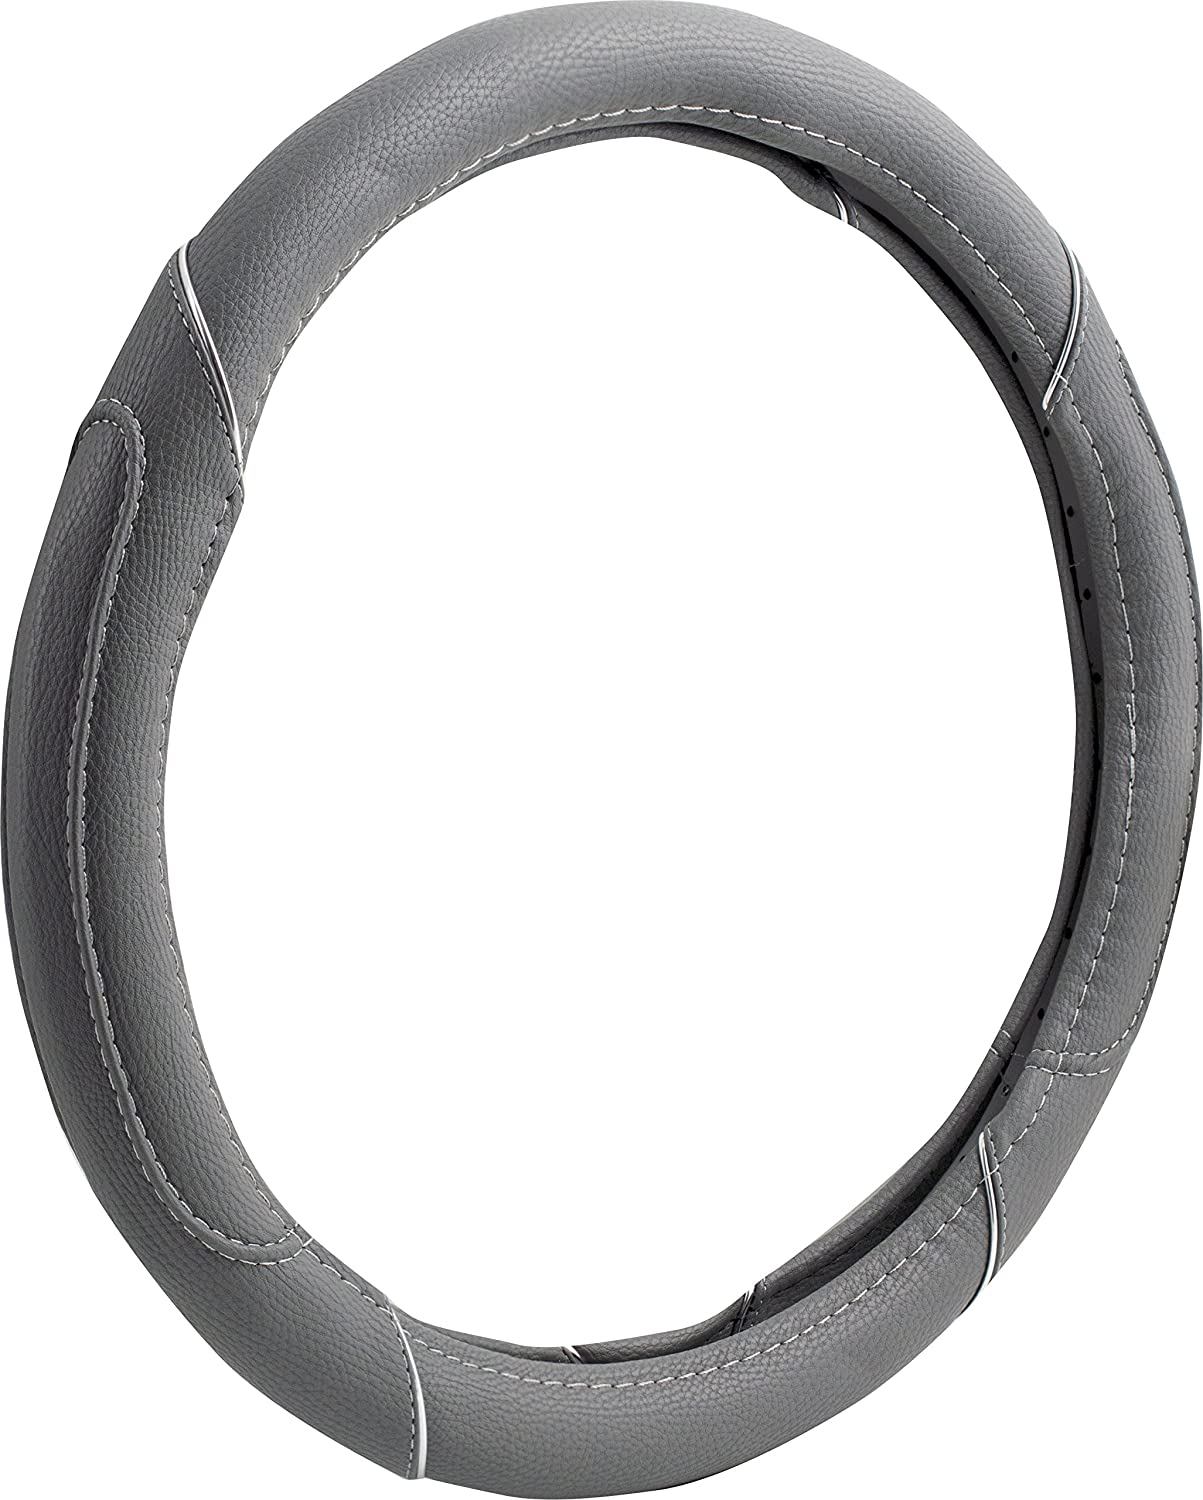 Custom Accessories 38661P Distressed with Chrome Accents Black Steering Wheel Cover Custom Grip